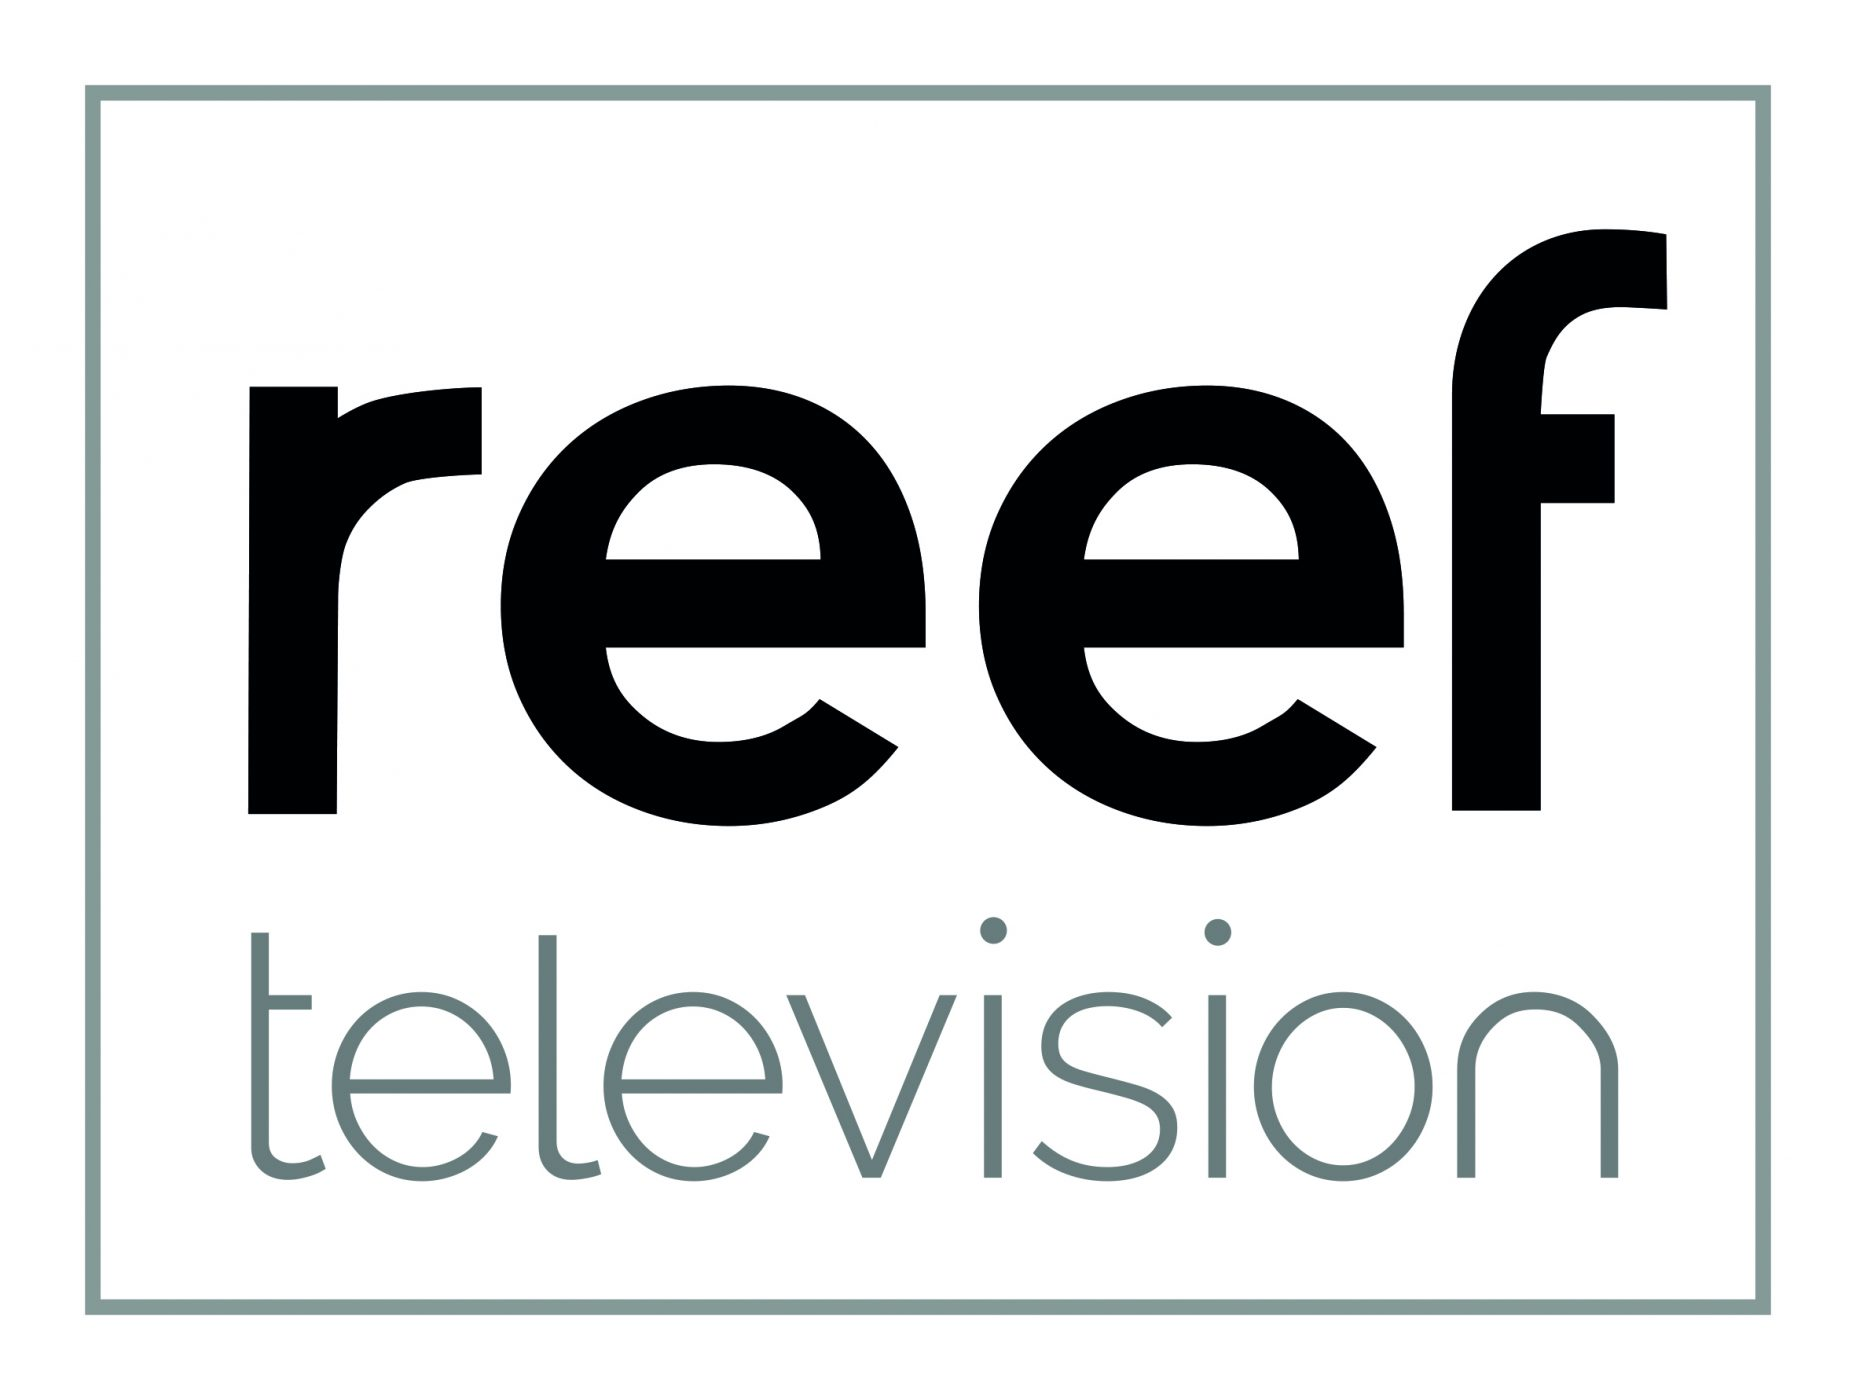 Sale of Reef Television to Ten Alps Logo